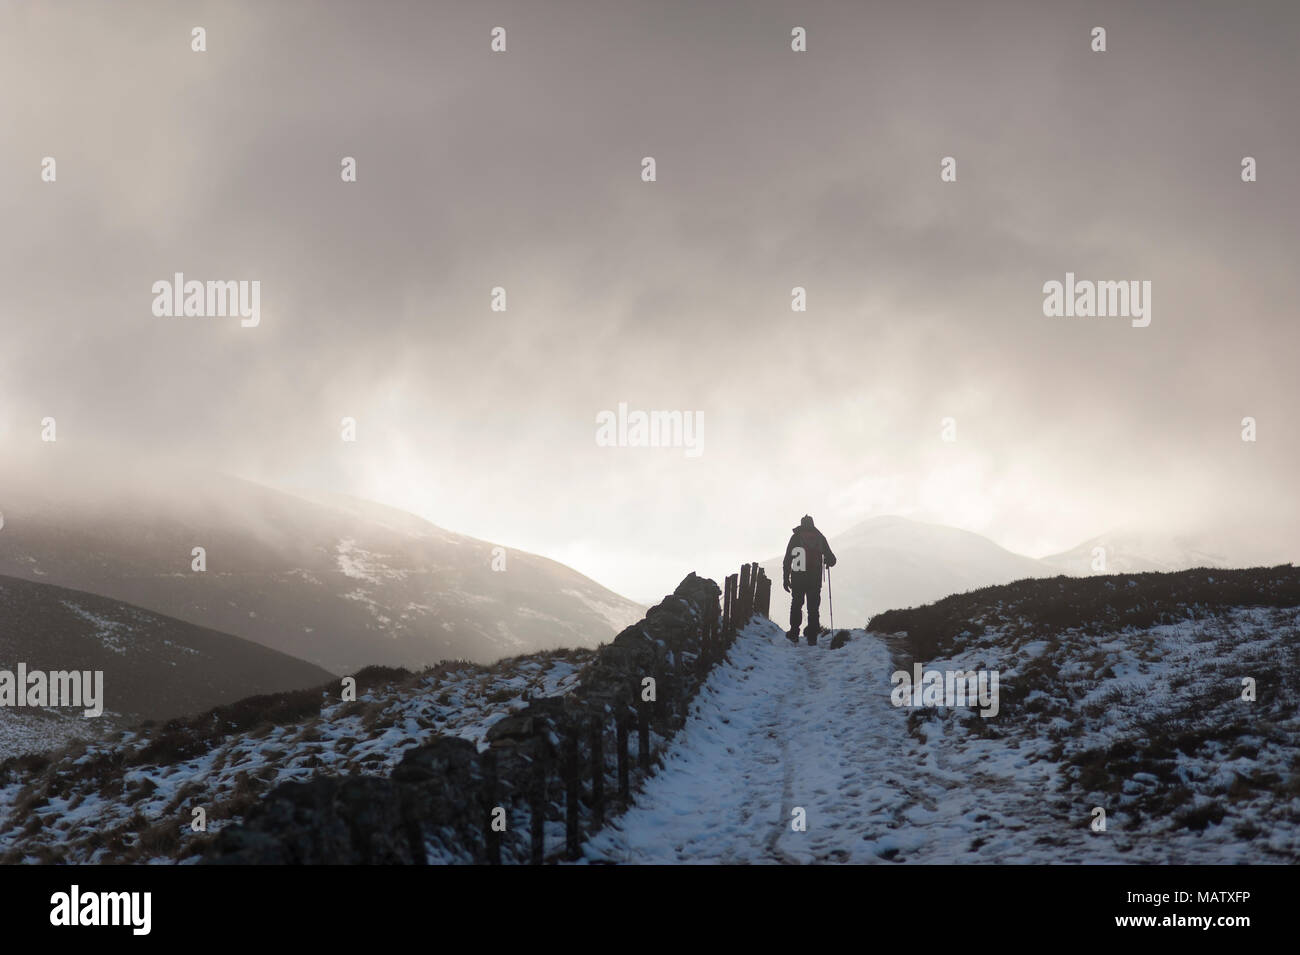 A man walking in the snow with the help of a walking stick along a path in the winter under a dark sky - Stock Image